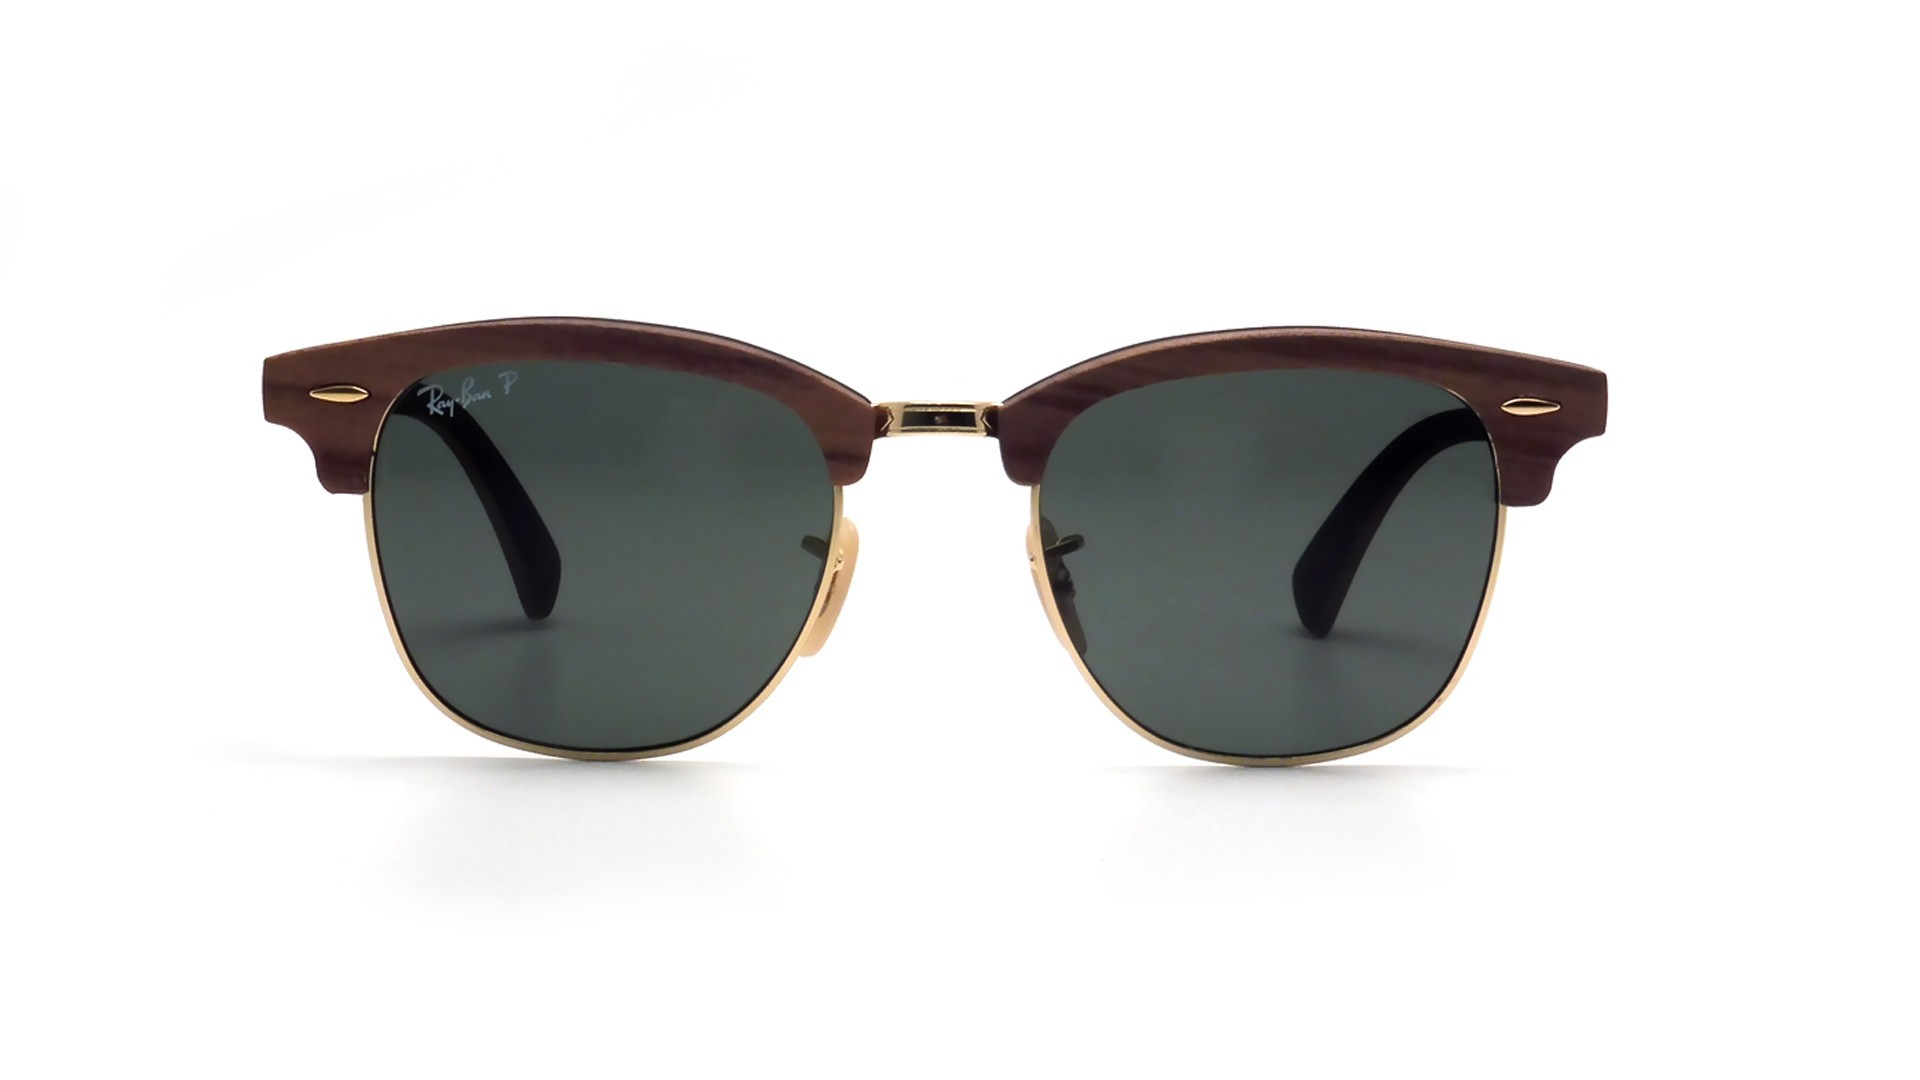 9d4bc1b087 ... ray ban clubmaster prix magasin